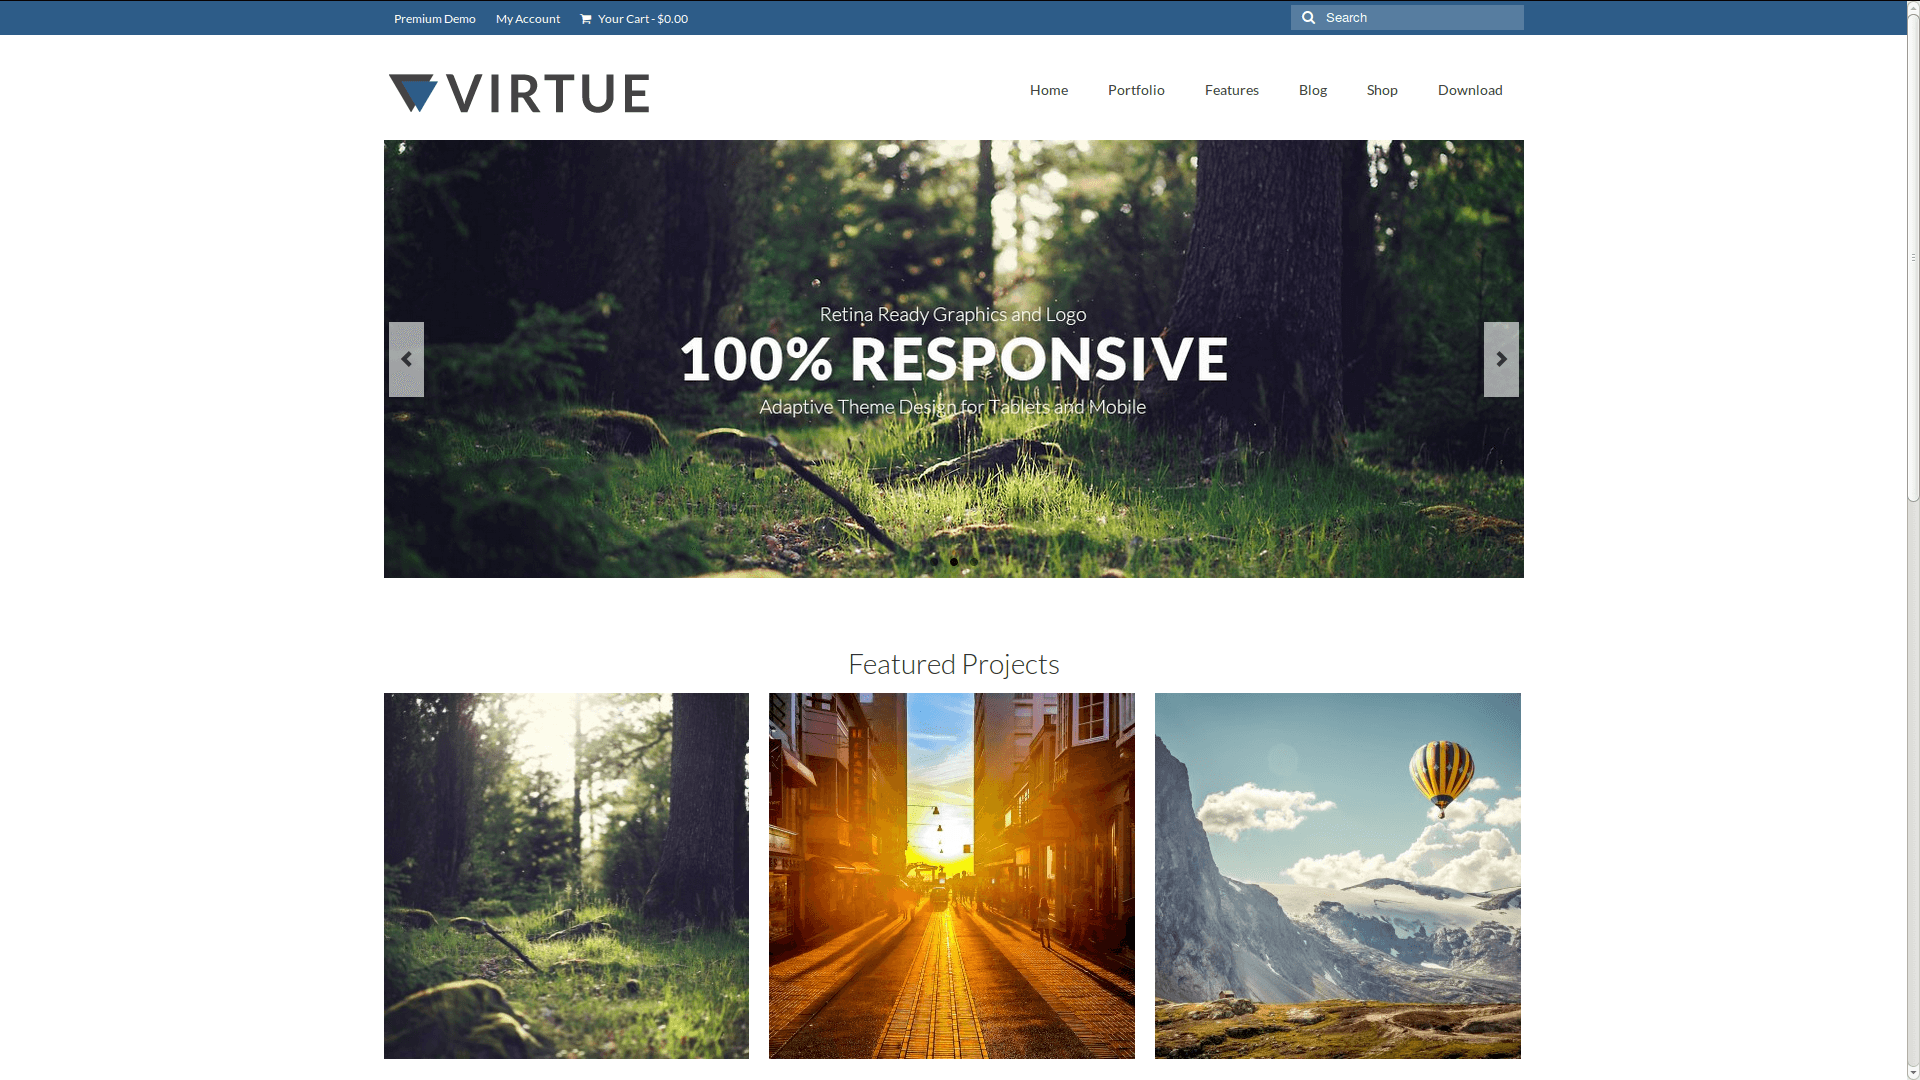 Temi WordPress Gratis – Virtue